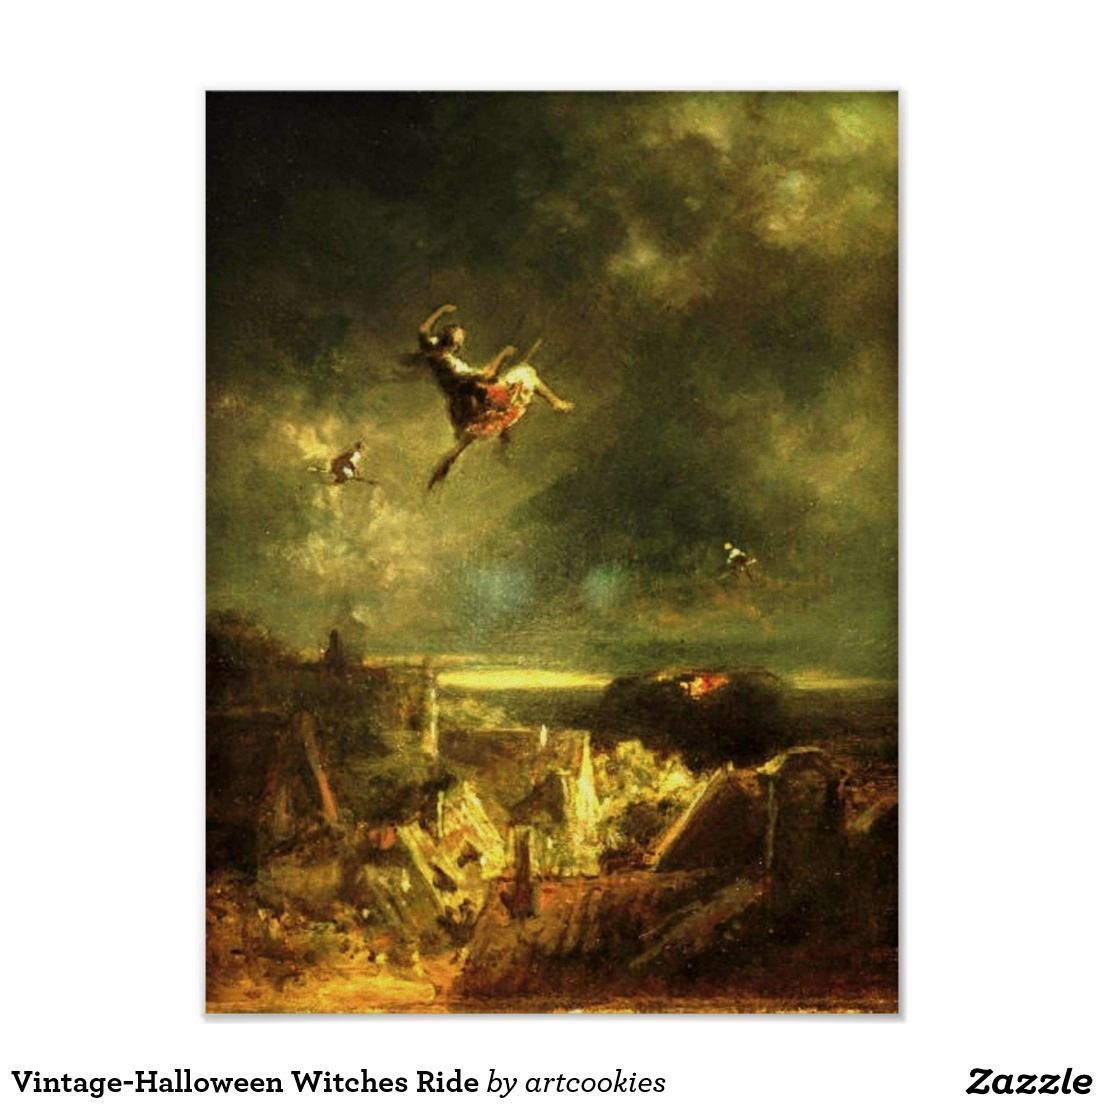 Halloween Witch Ride 2020 Vintage Halloween Witches Ride Poster | Zazzle.in 2020